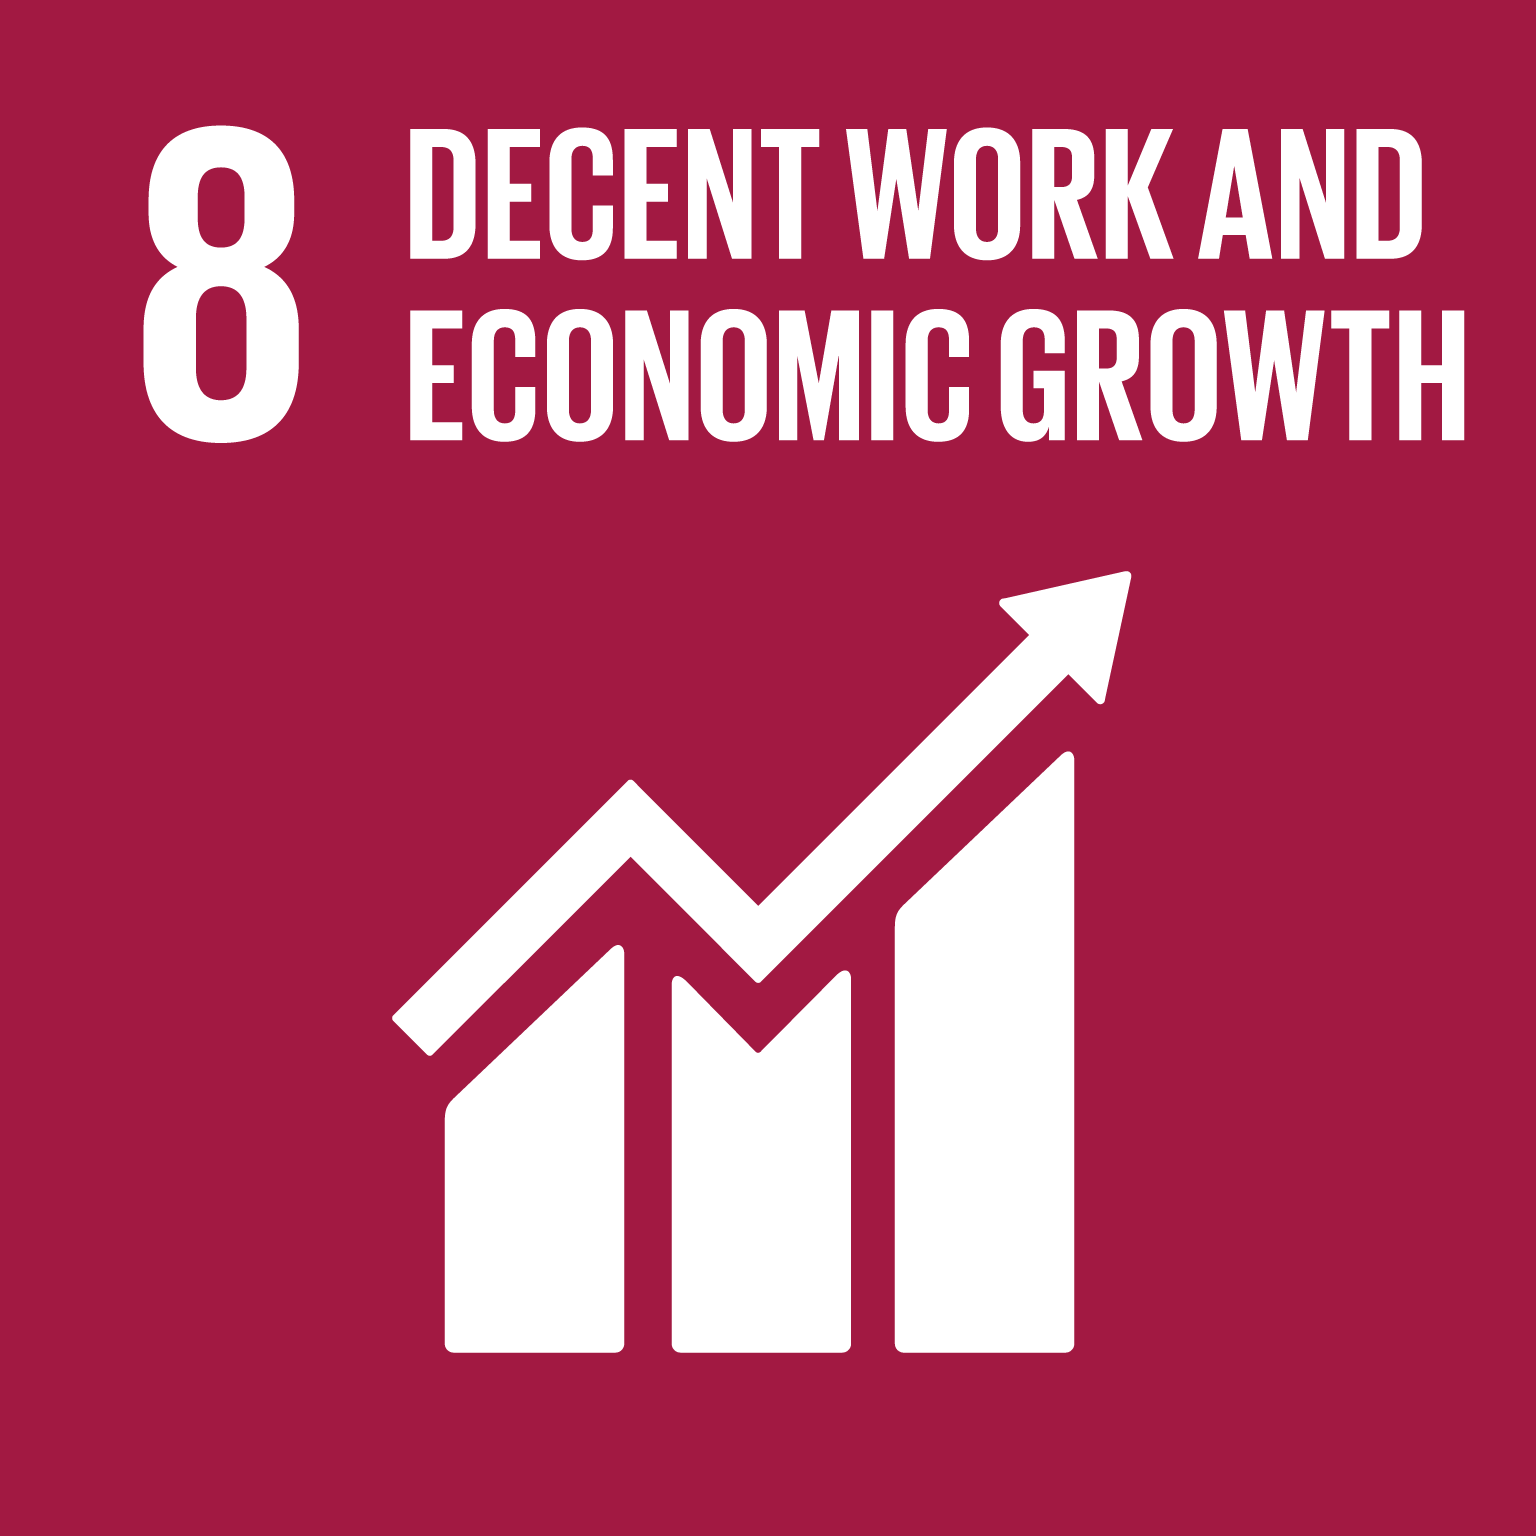 【SDGs logo】DECENT WORK AND ECONOMIC GROWTH